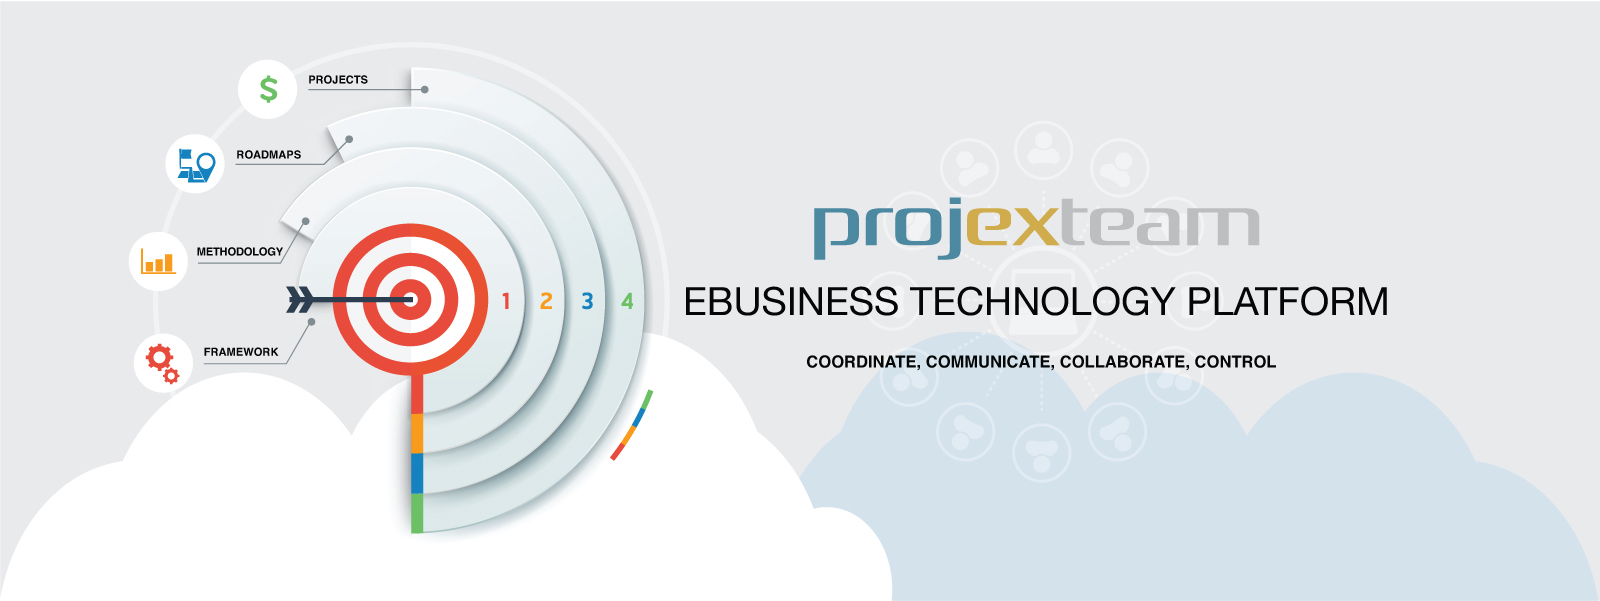 eBusiness Technology Platform